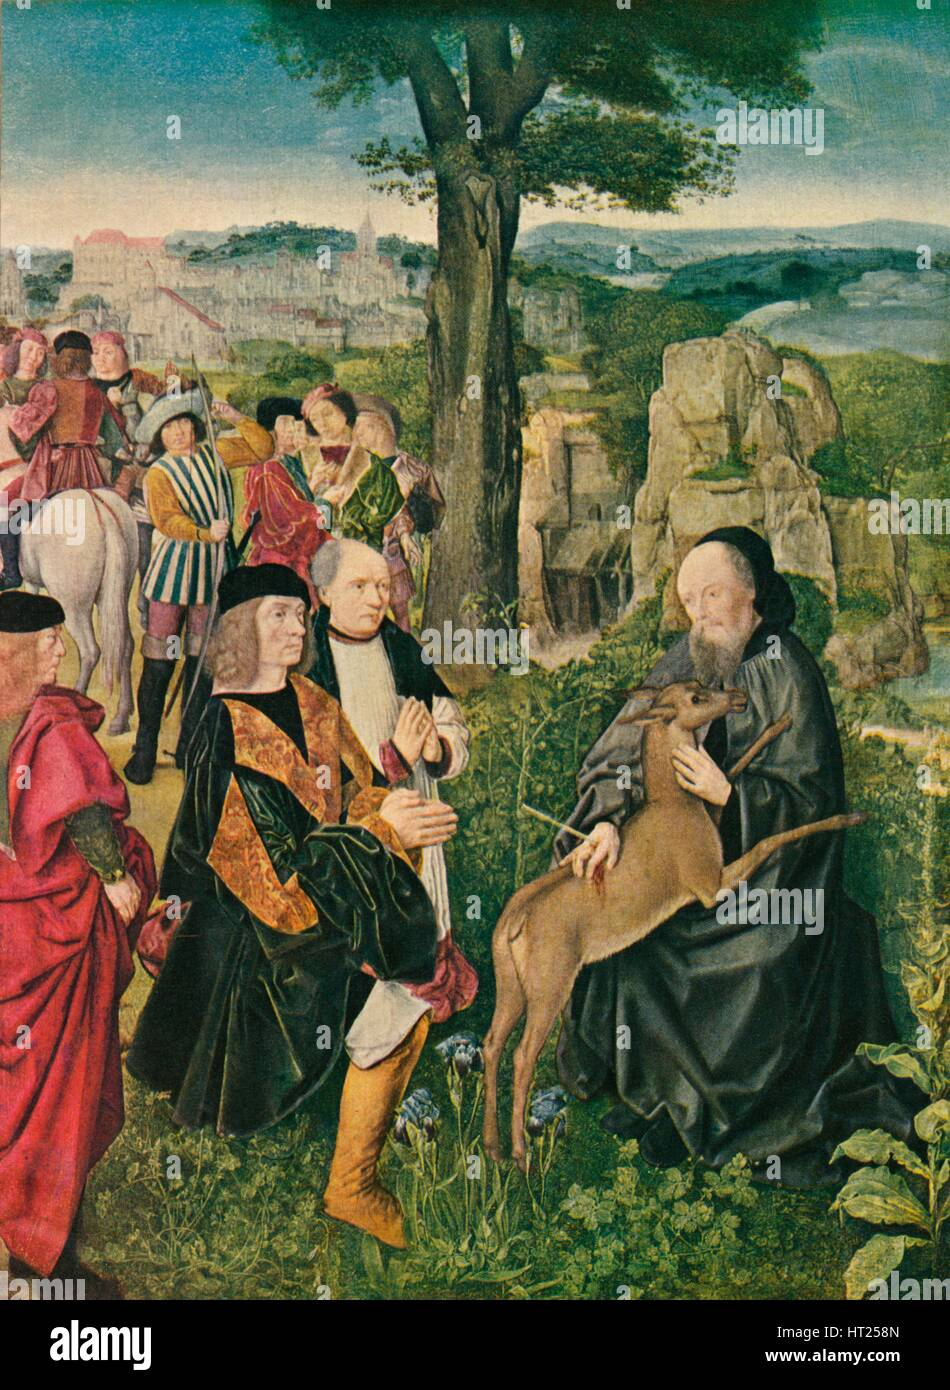 'Saint Giles and the Deer', c1500, (1909). Artist: Unknown. - Stock Image